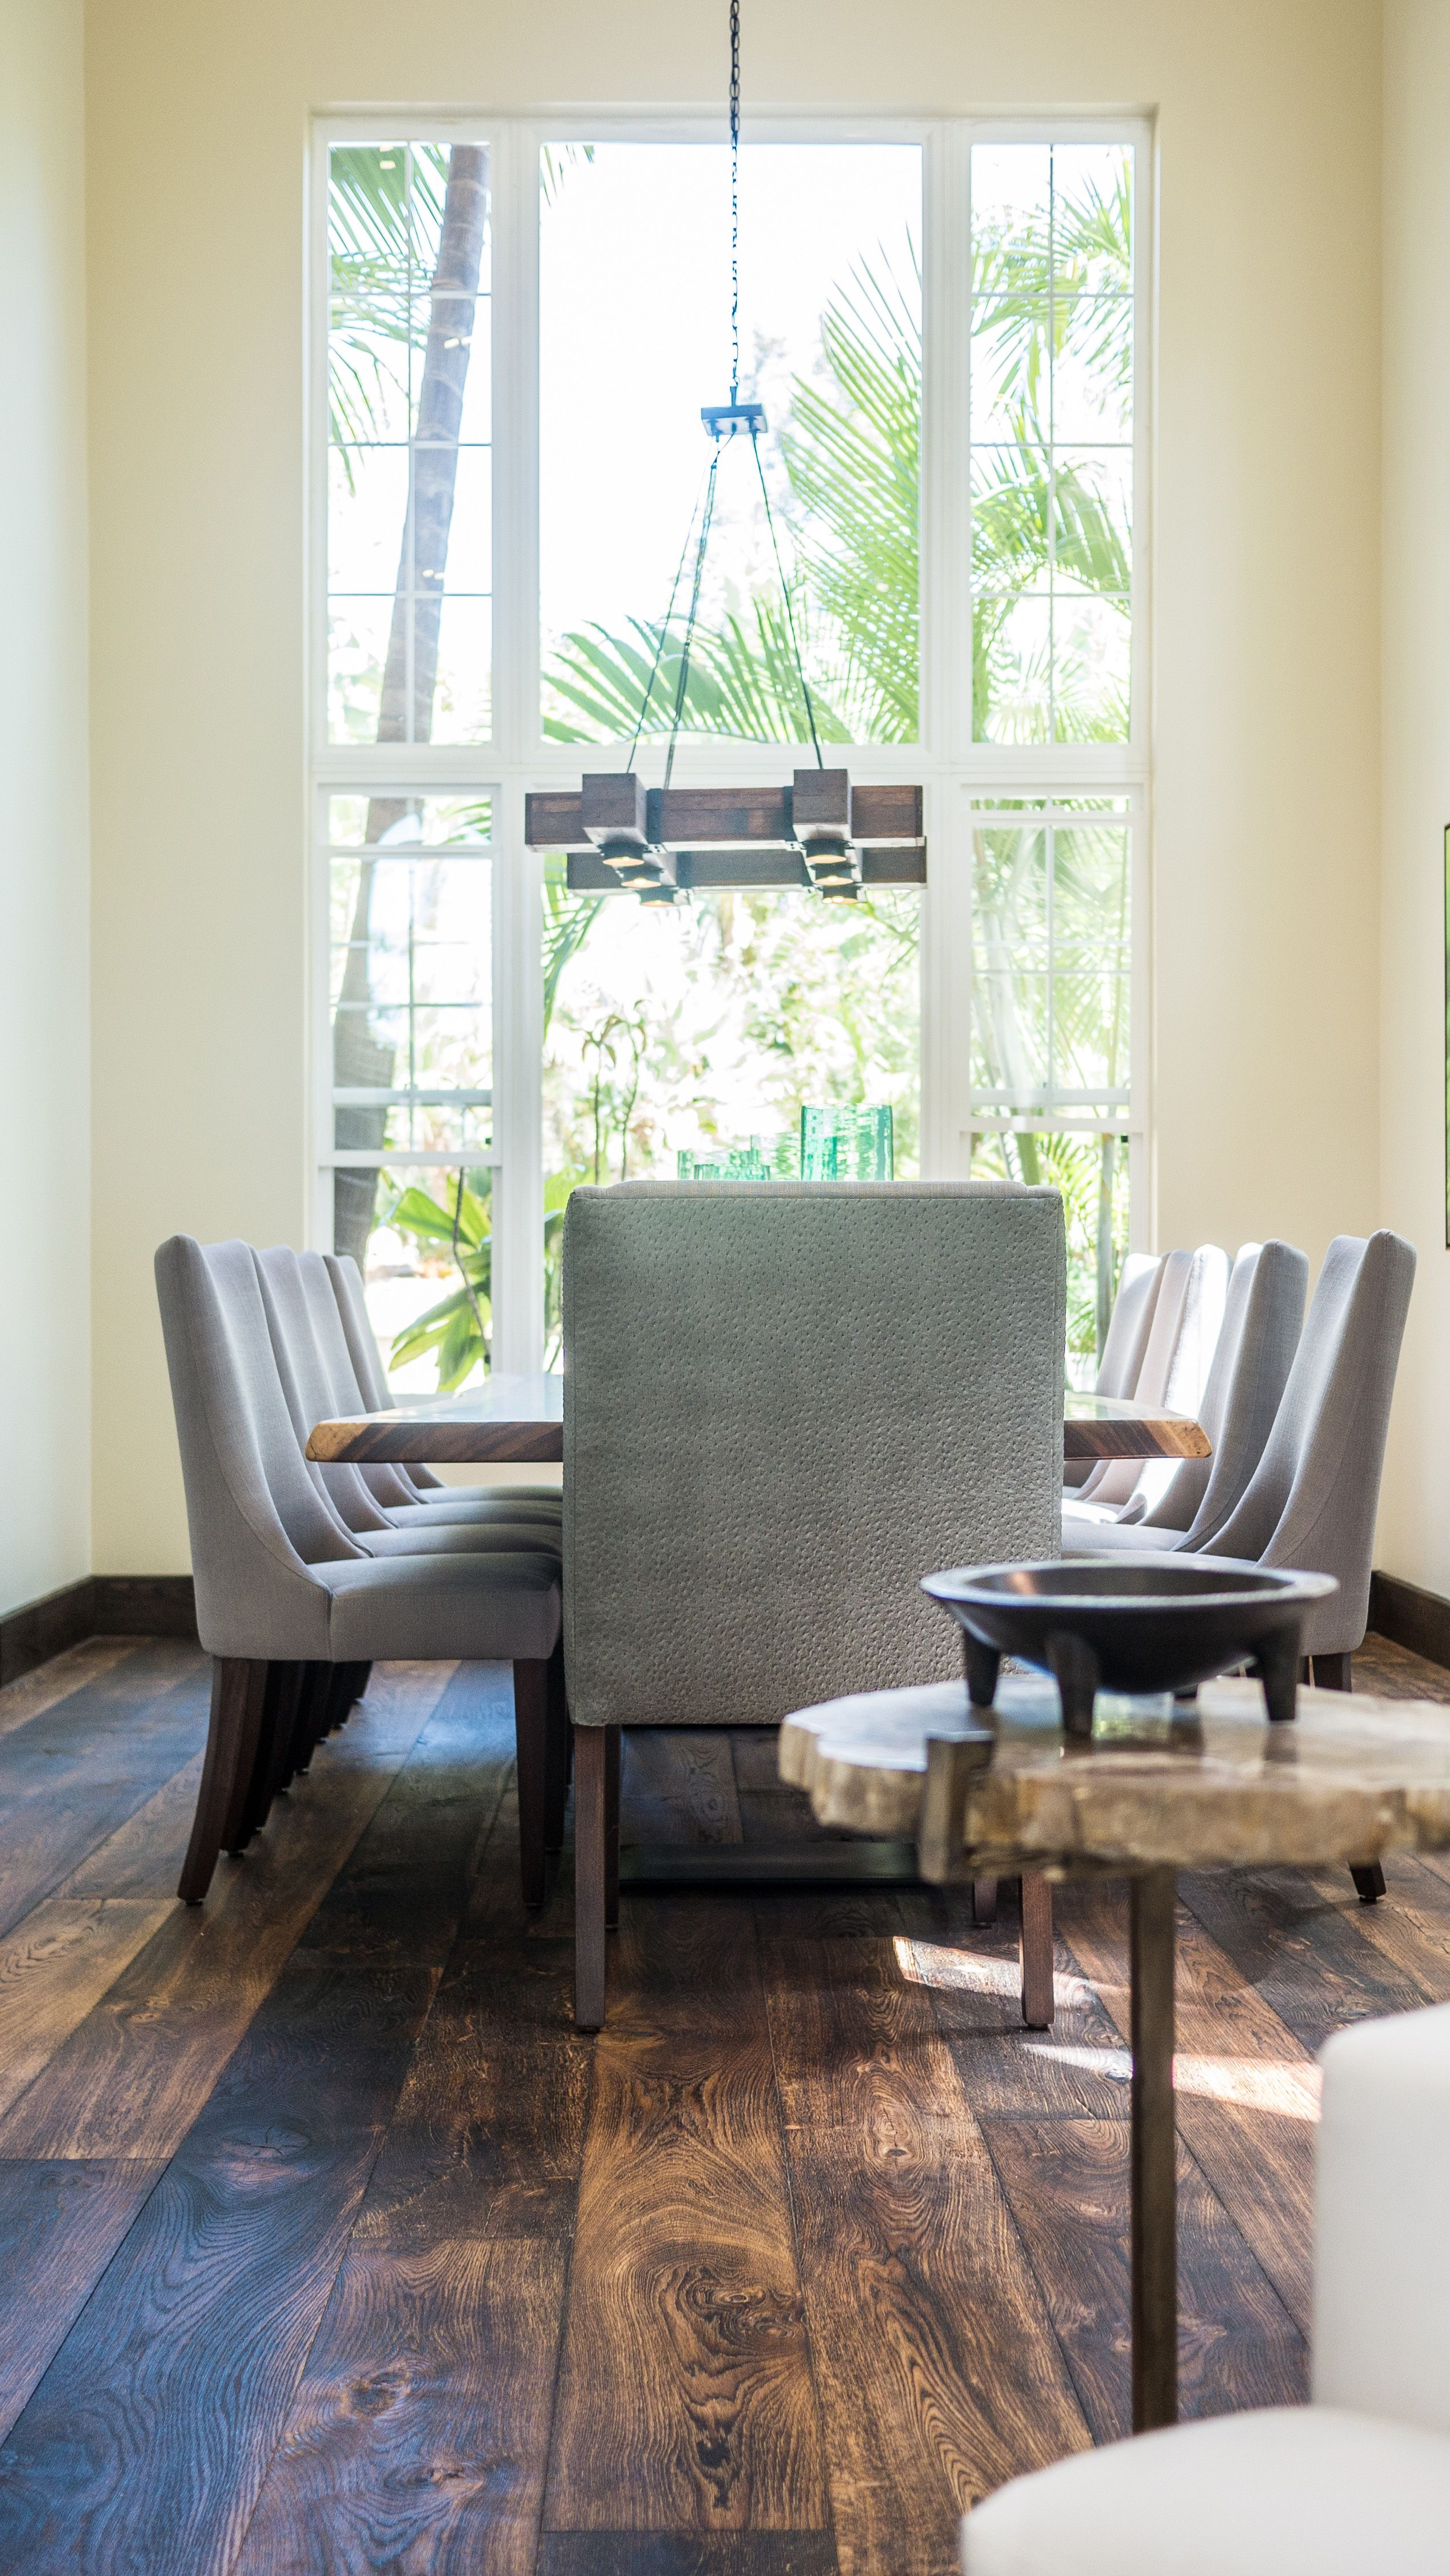 Modern Paradise - Kathy Ann Abell Interiors   San Diego, Califronia   Dining Room   Reclaimed Wood   Petrified Wood